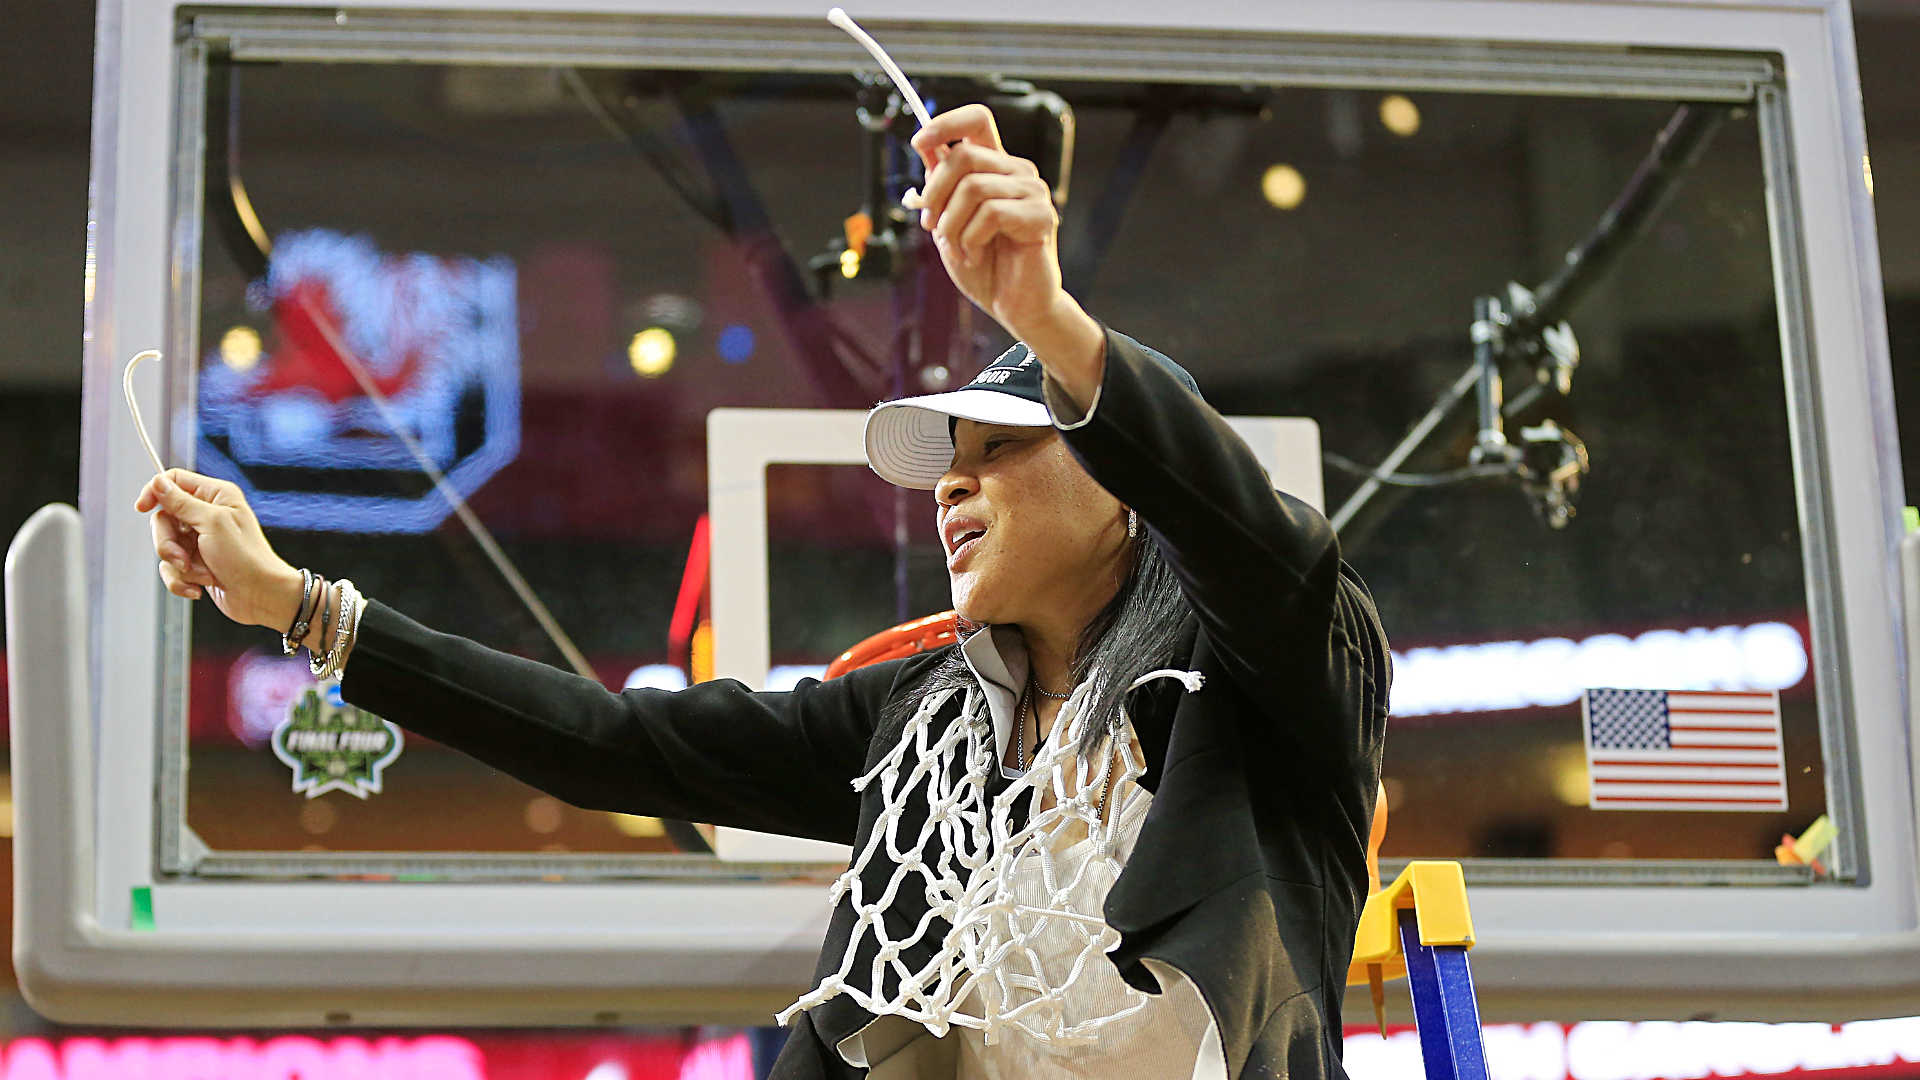 South Carolina coach: Women's basketball group not able to attend White House event